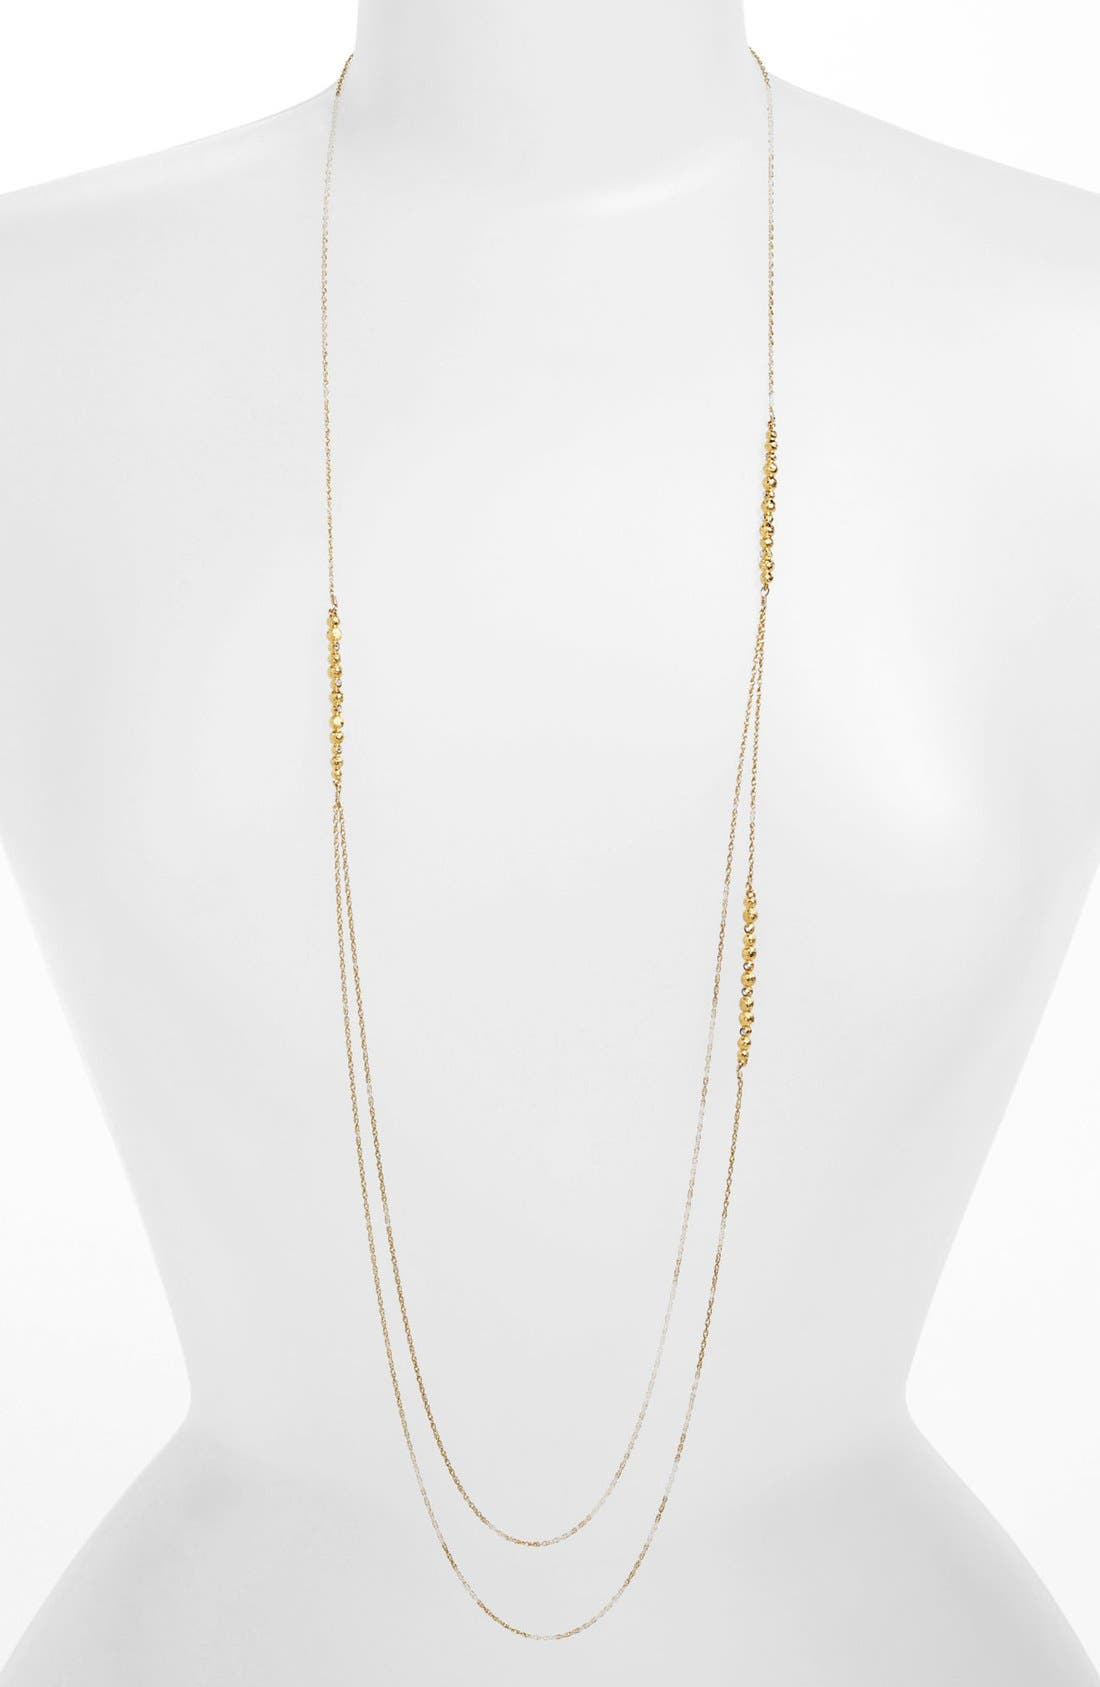 Alternate Image 1 Selected - Alexis Bittar 'Elements - Cordova' Long Multistrand Necklace